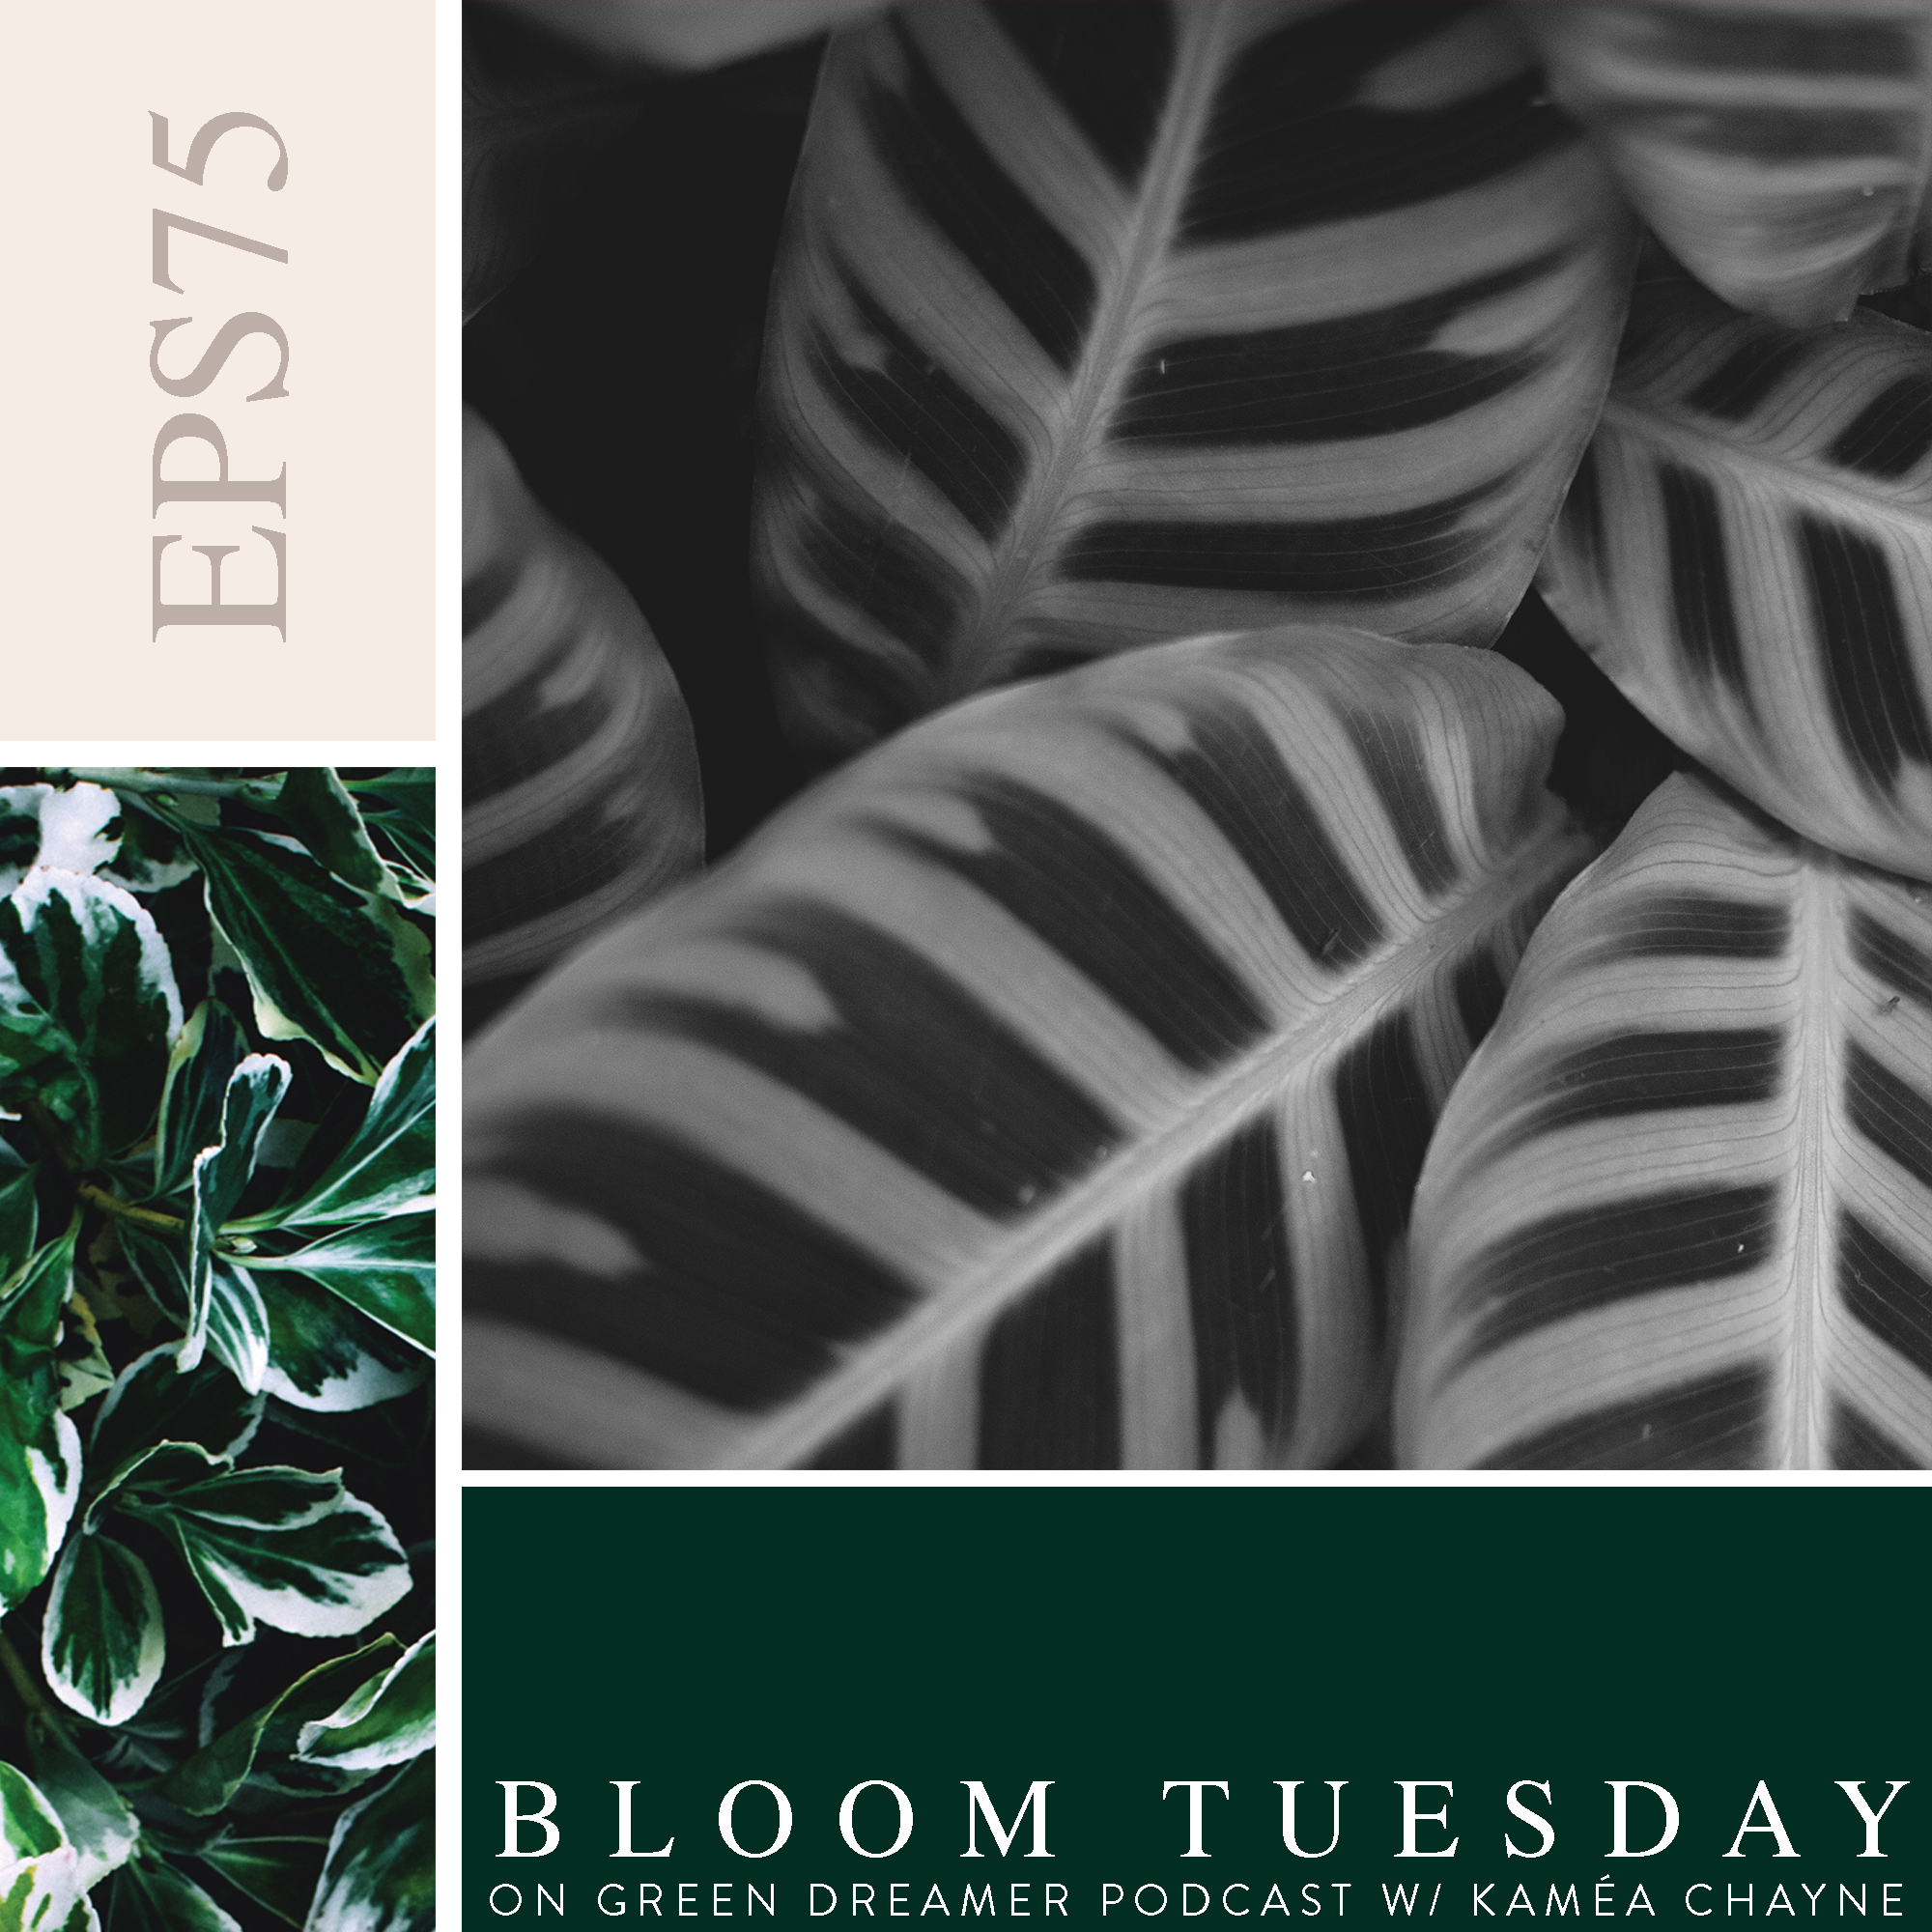 75) BLOOM TUESDAY